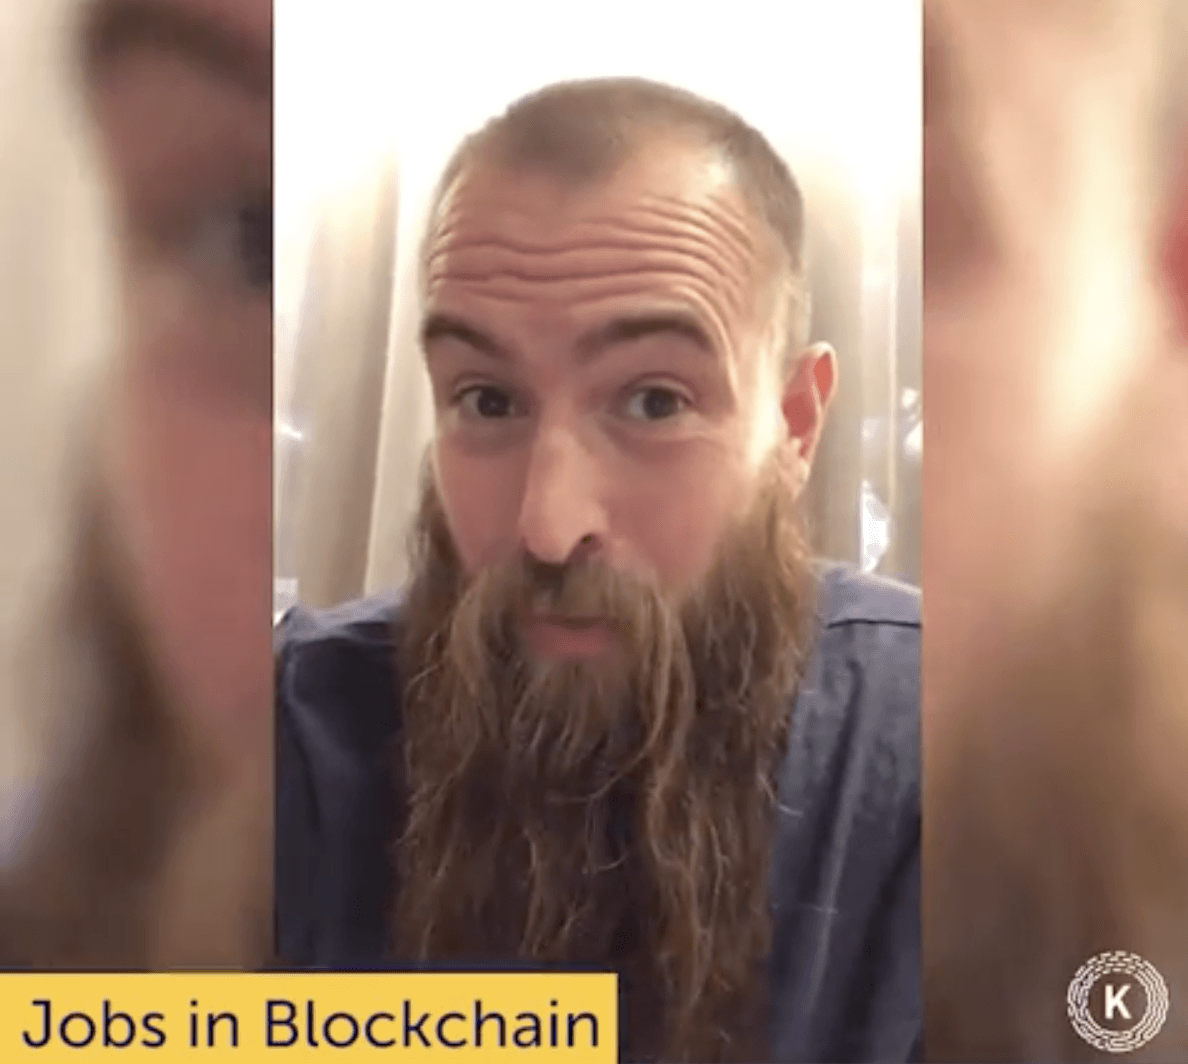 Jobs in Blockchain